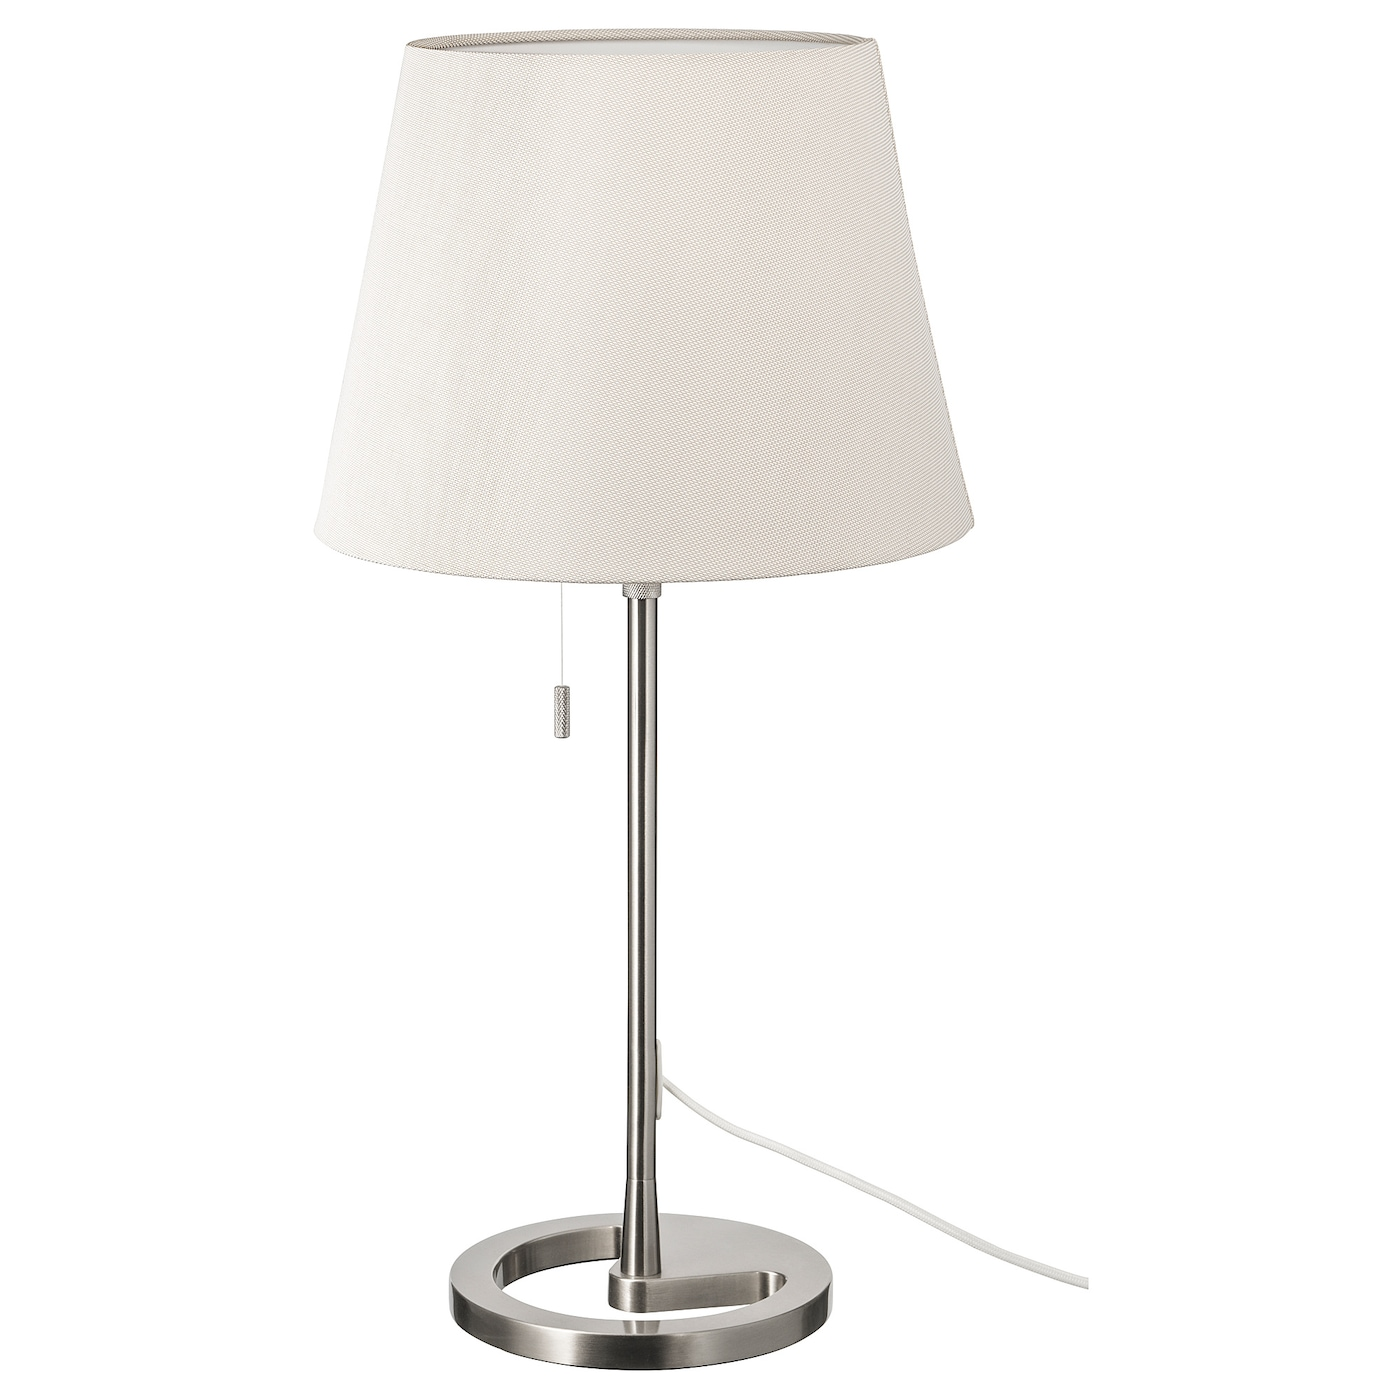 IKEA NYFORS table lamp The height is adjustable to suit your lighting needs.